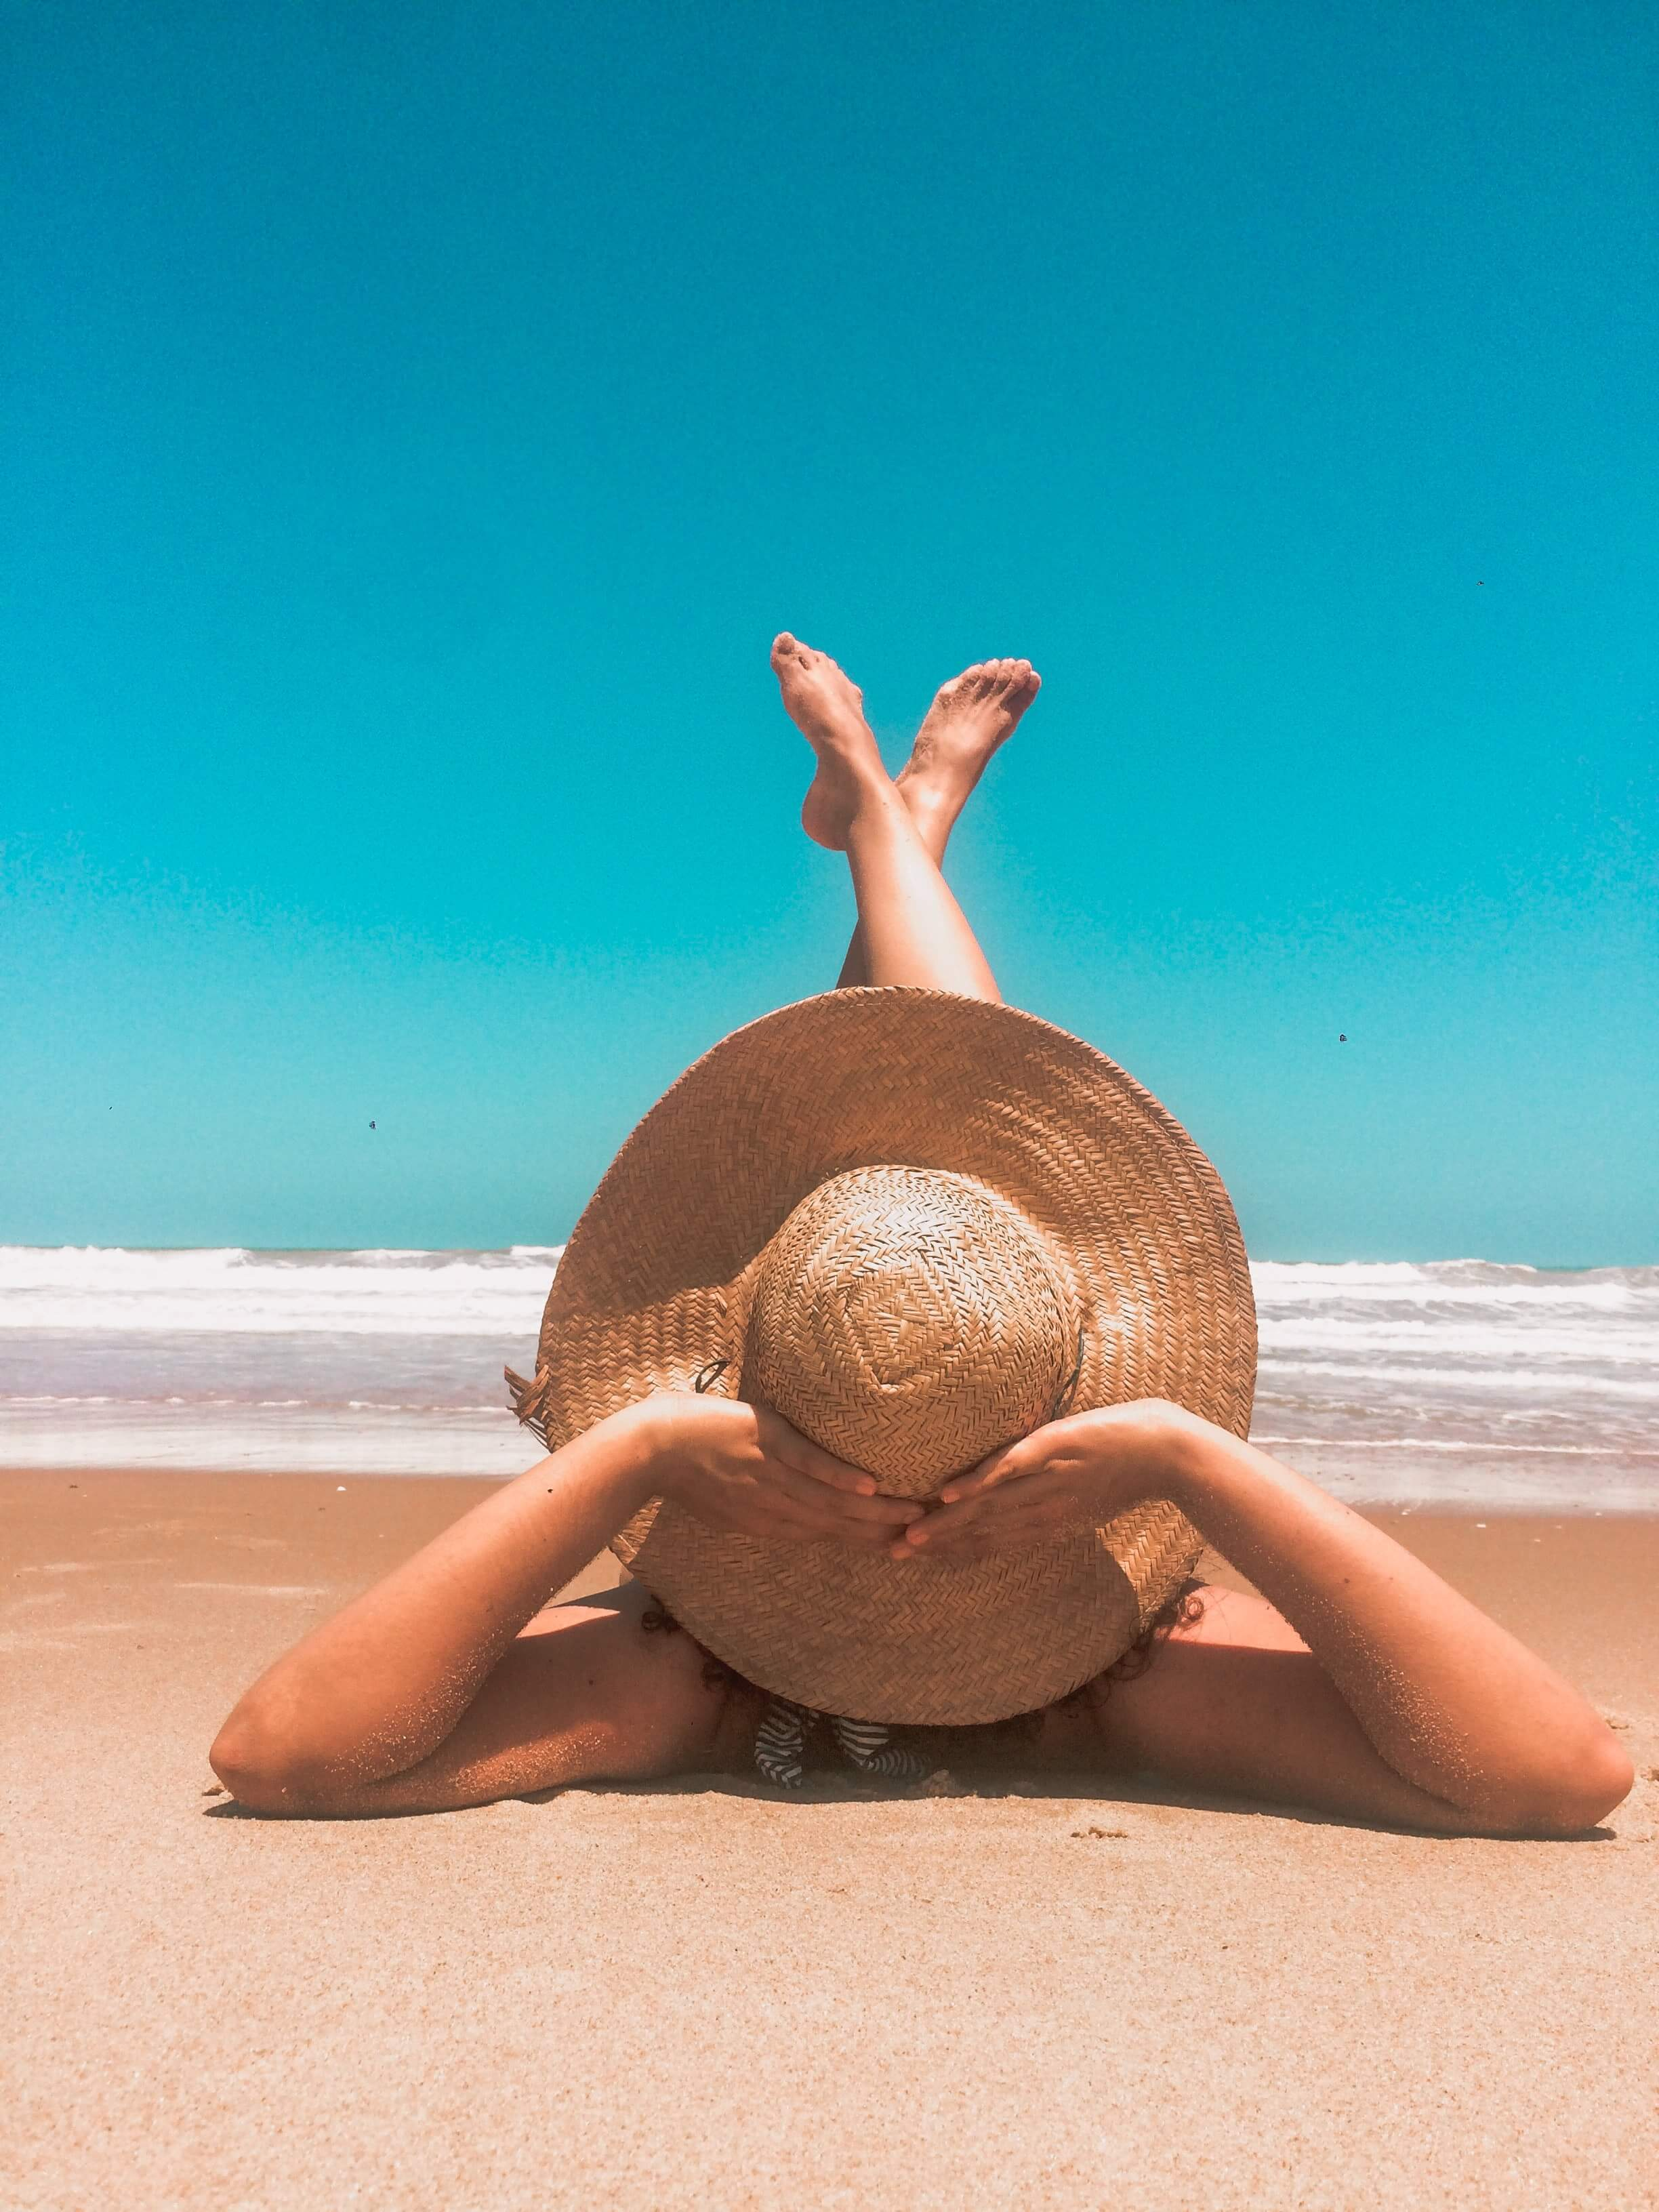 Person lying on sand with large sunhat